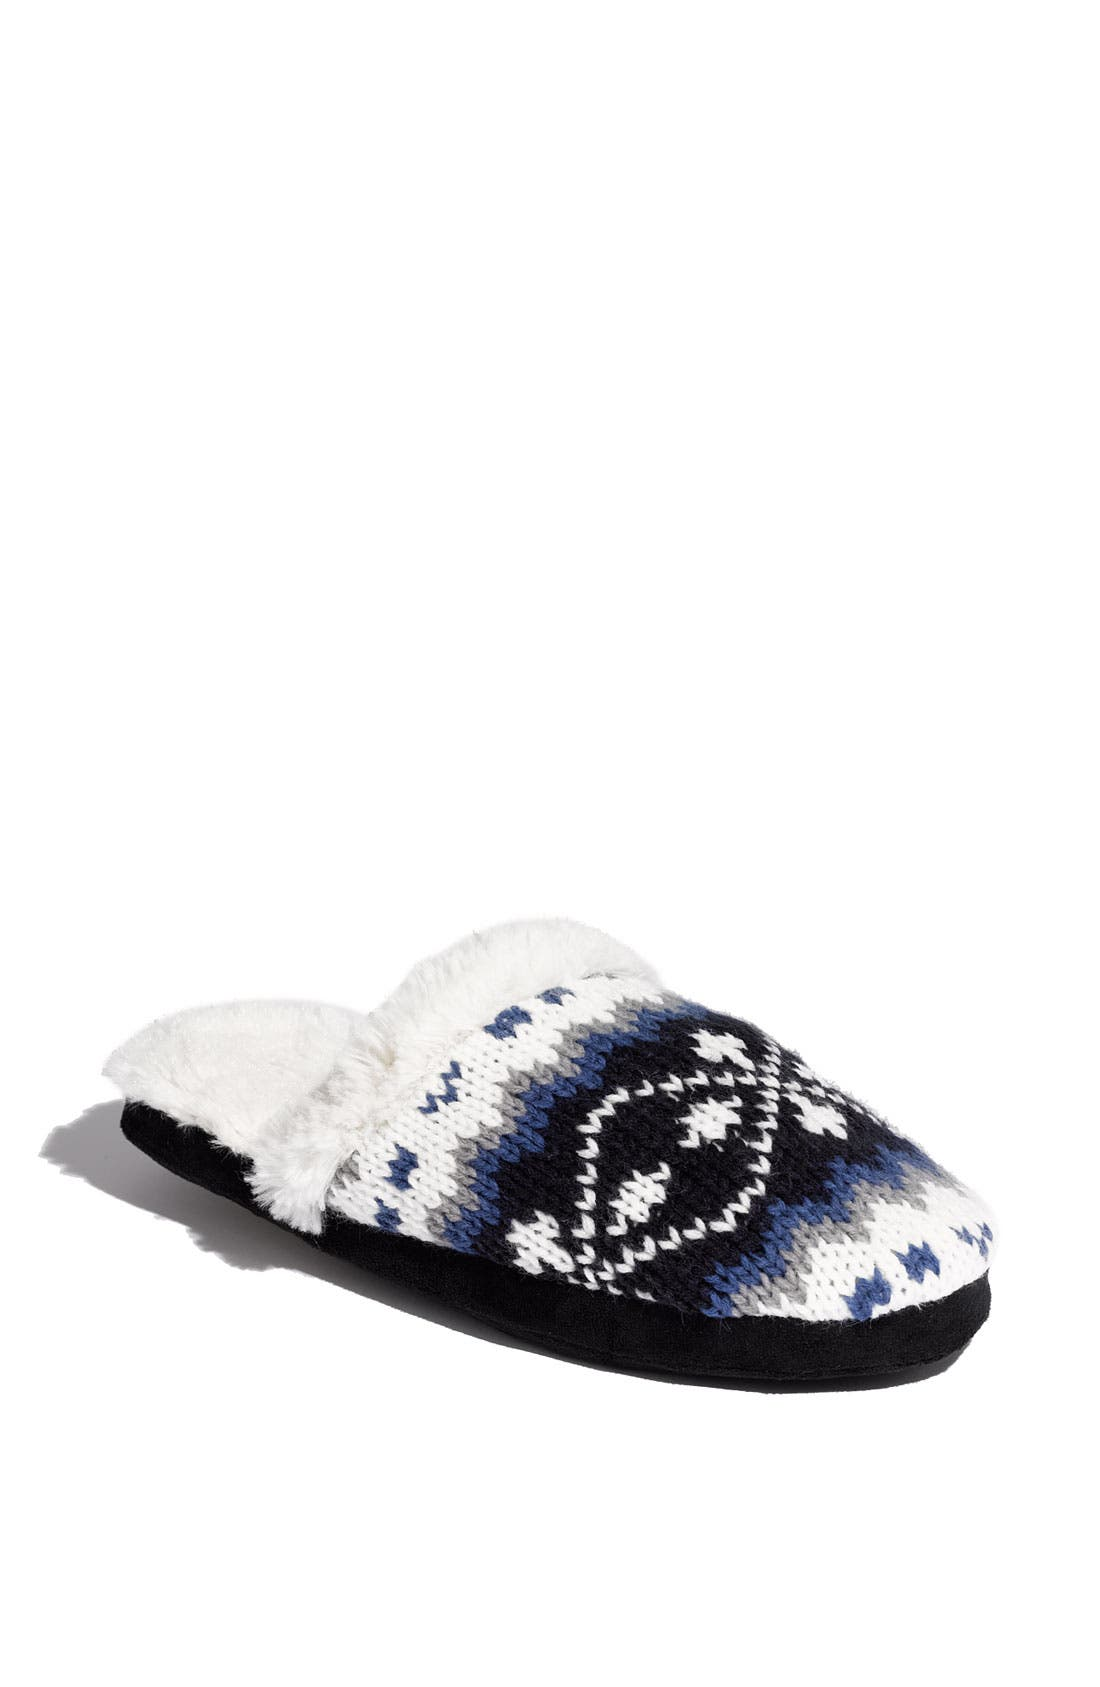 Alternate Image 1 Selected - Make + Model Nordic Scuff Slipper